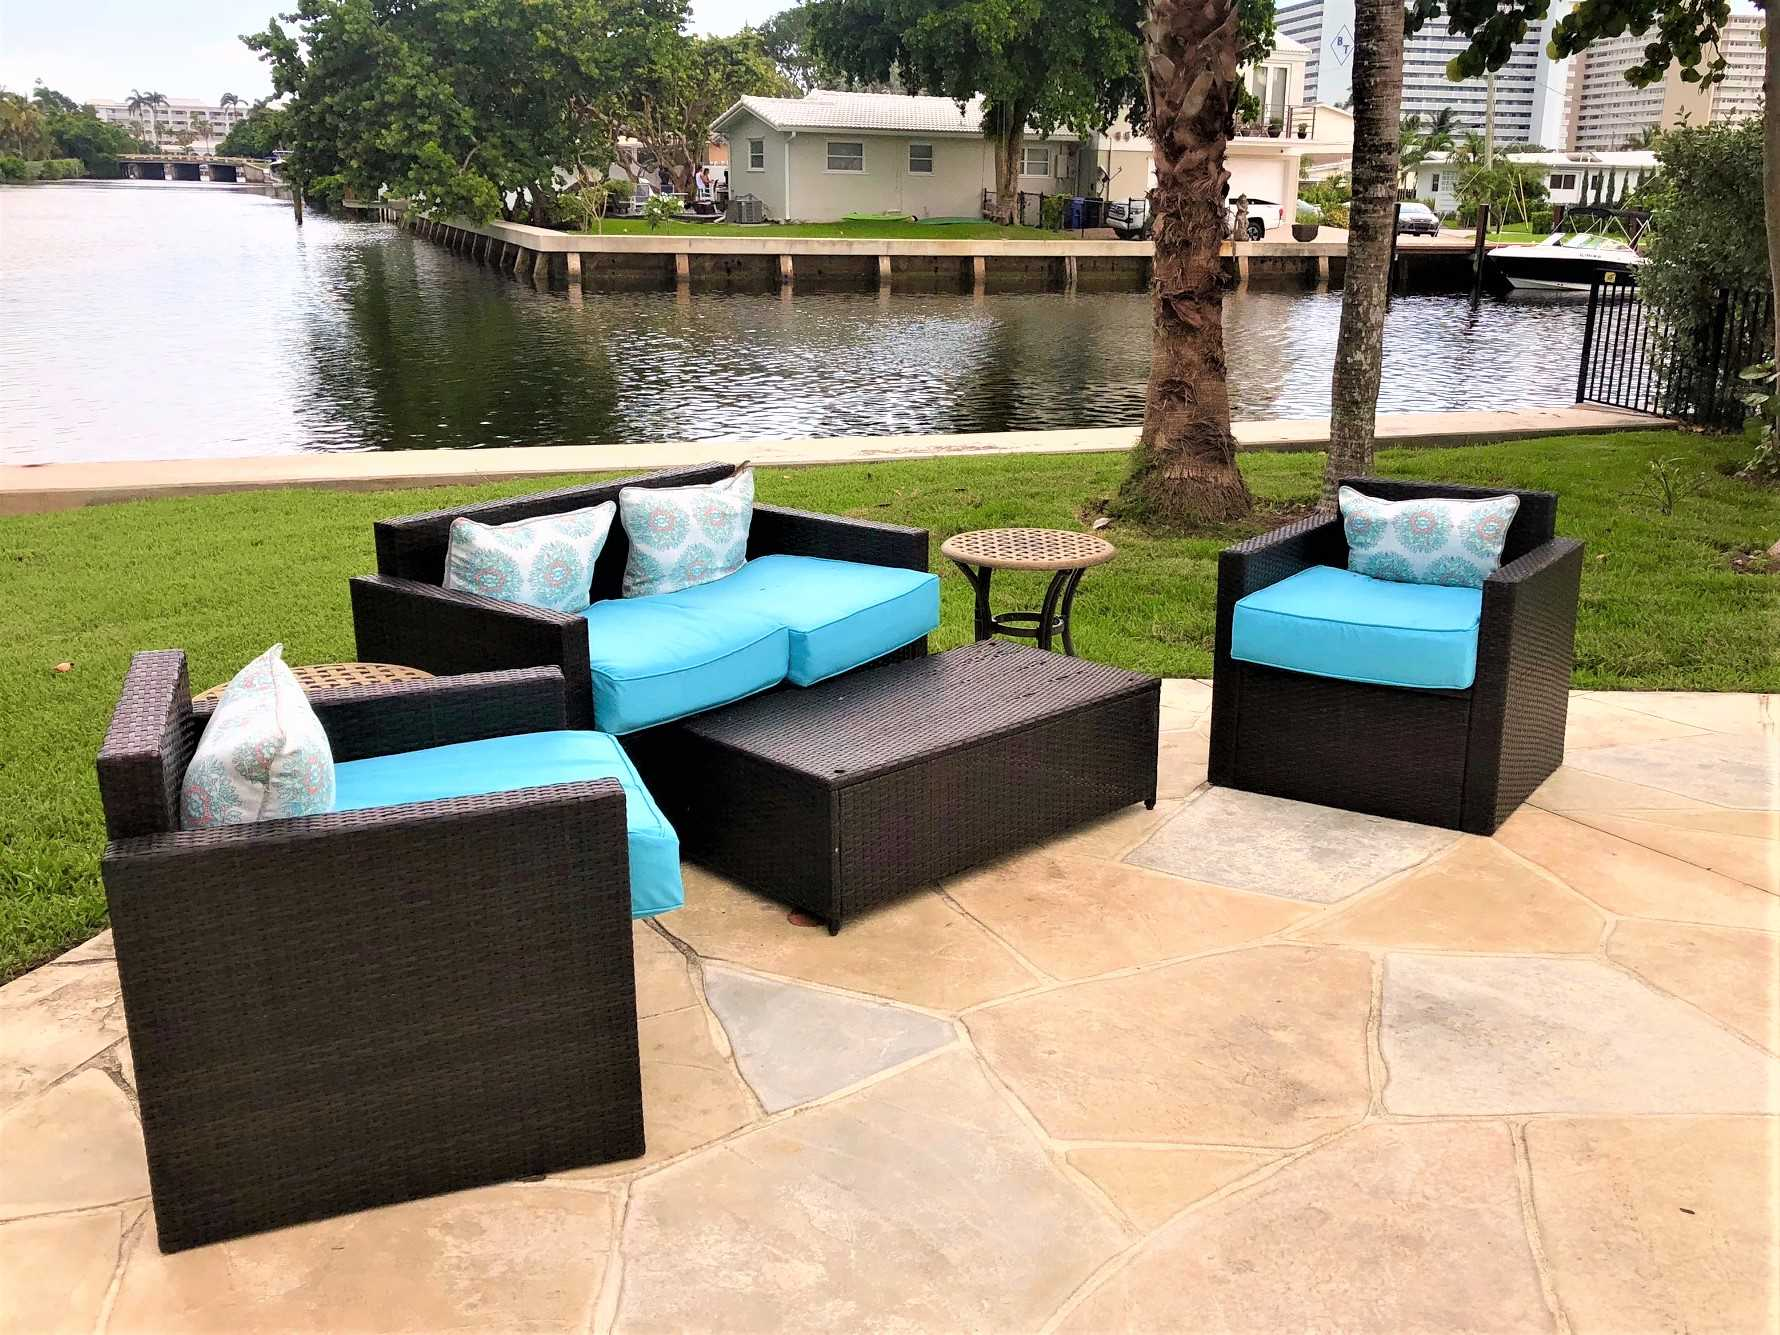 Relax on the deck furniture while enjoying your favorite bev